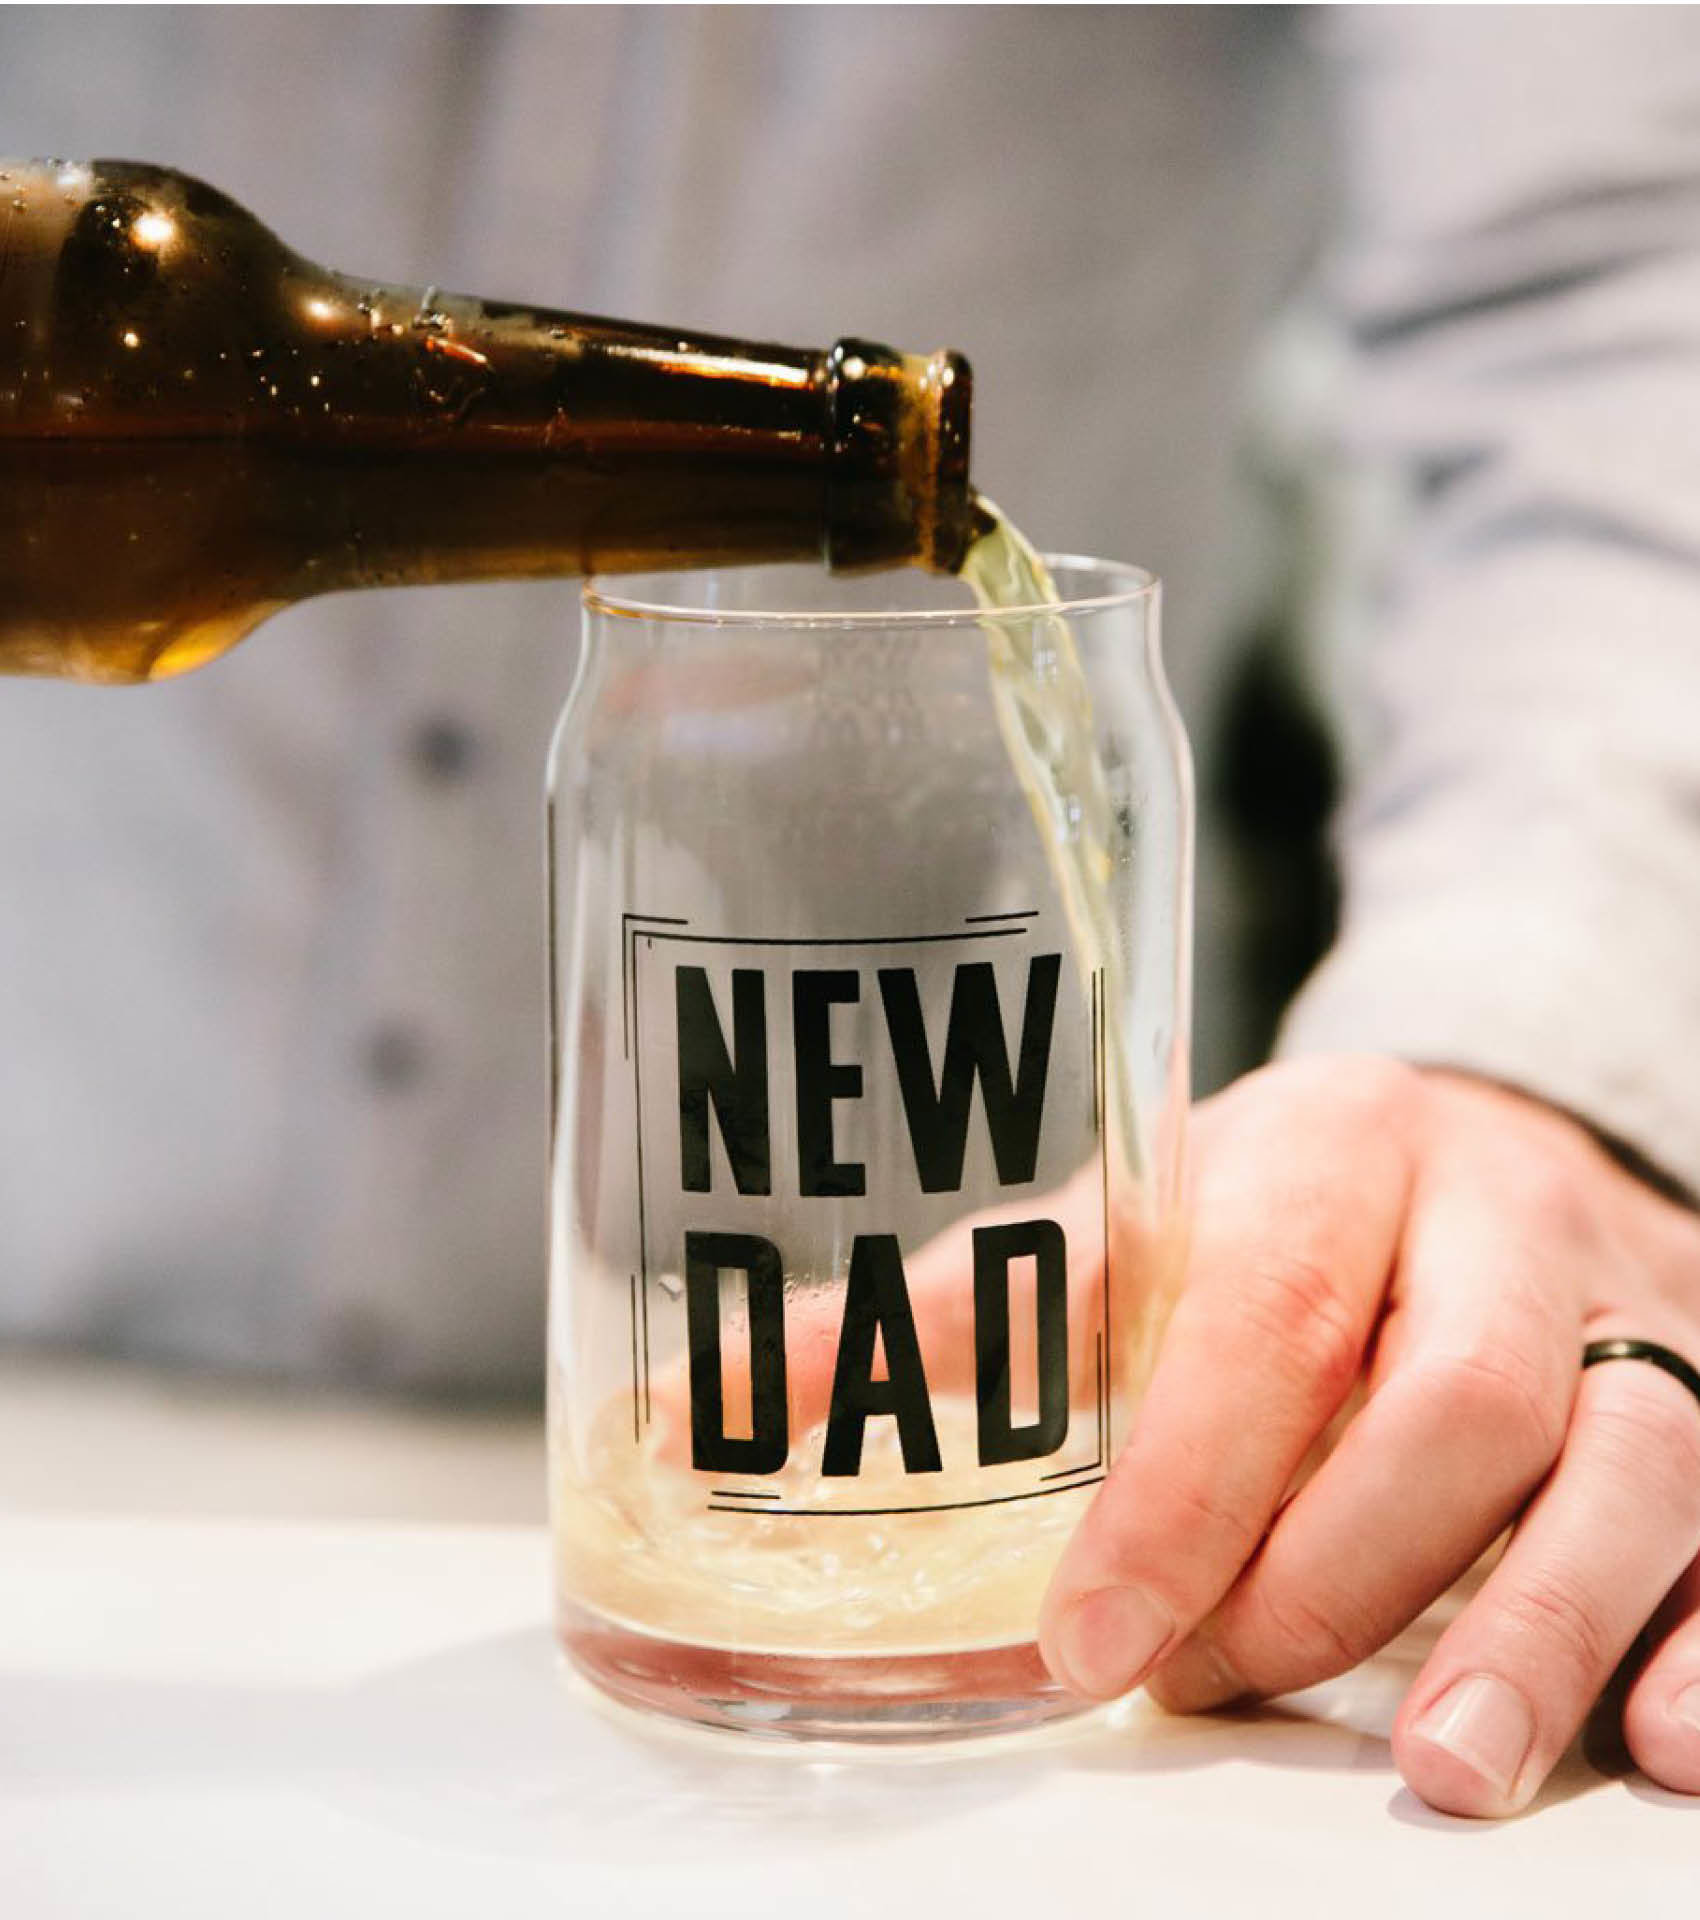 Father pouring drink into a New Dad glass mug